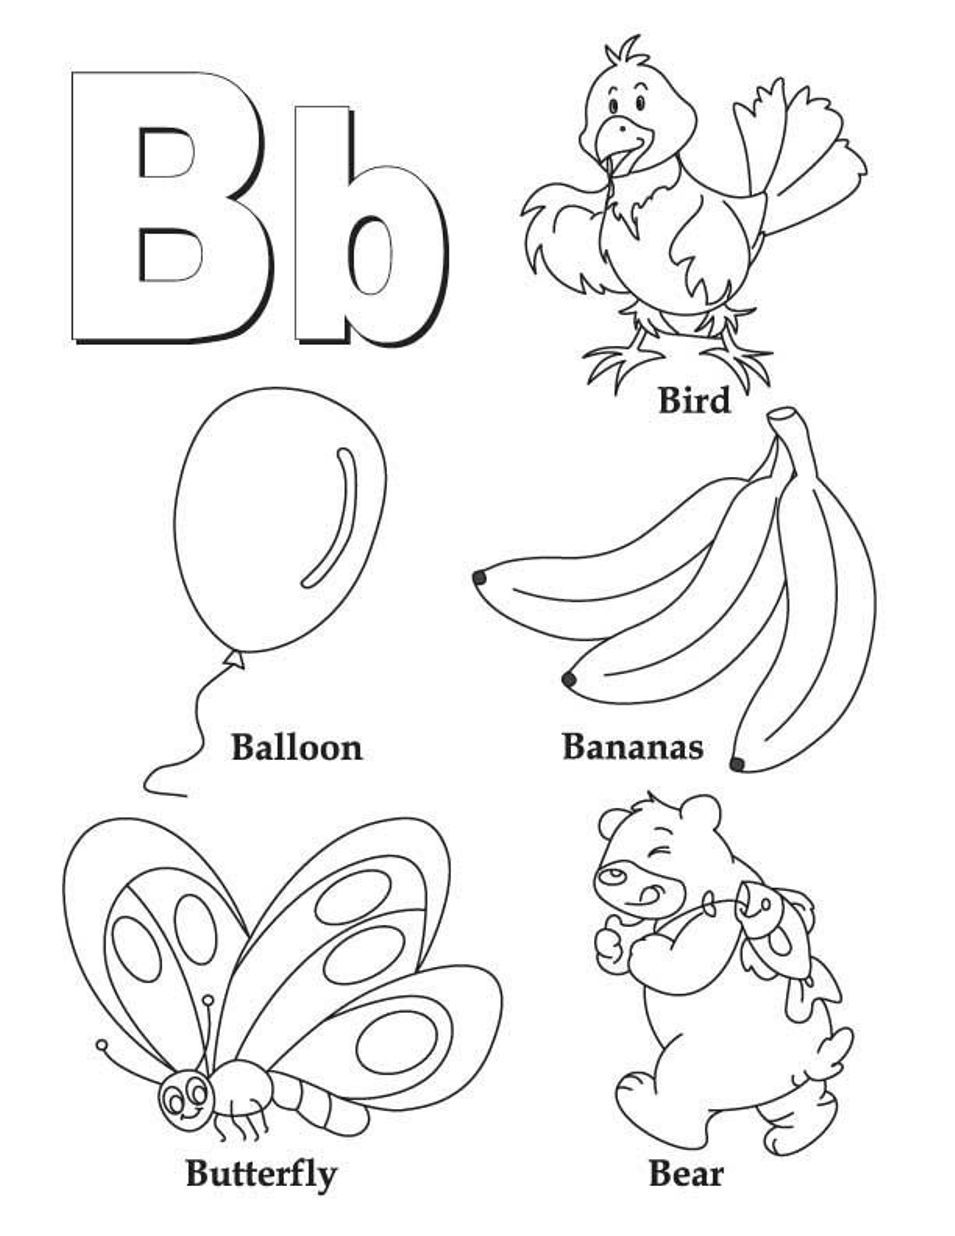 Alphabet Coloring Pages B Word Printable Animals Letter B Coloring Pages Letter B Worksheets Alphabet Coloring Pages